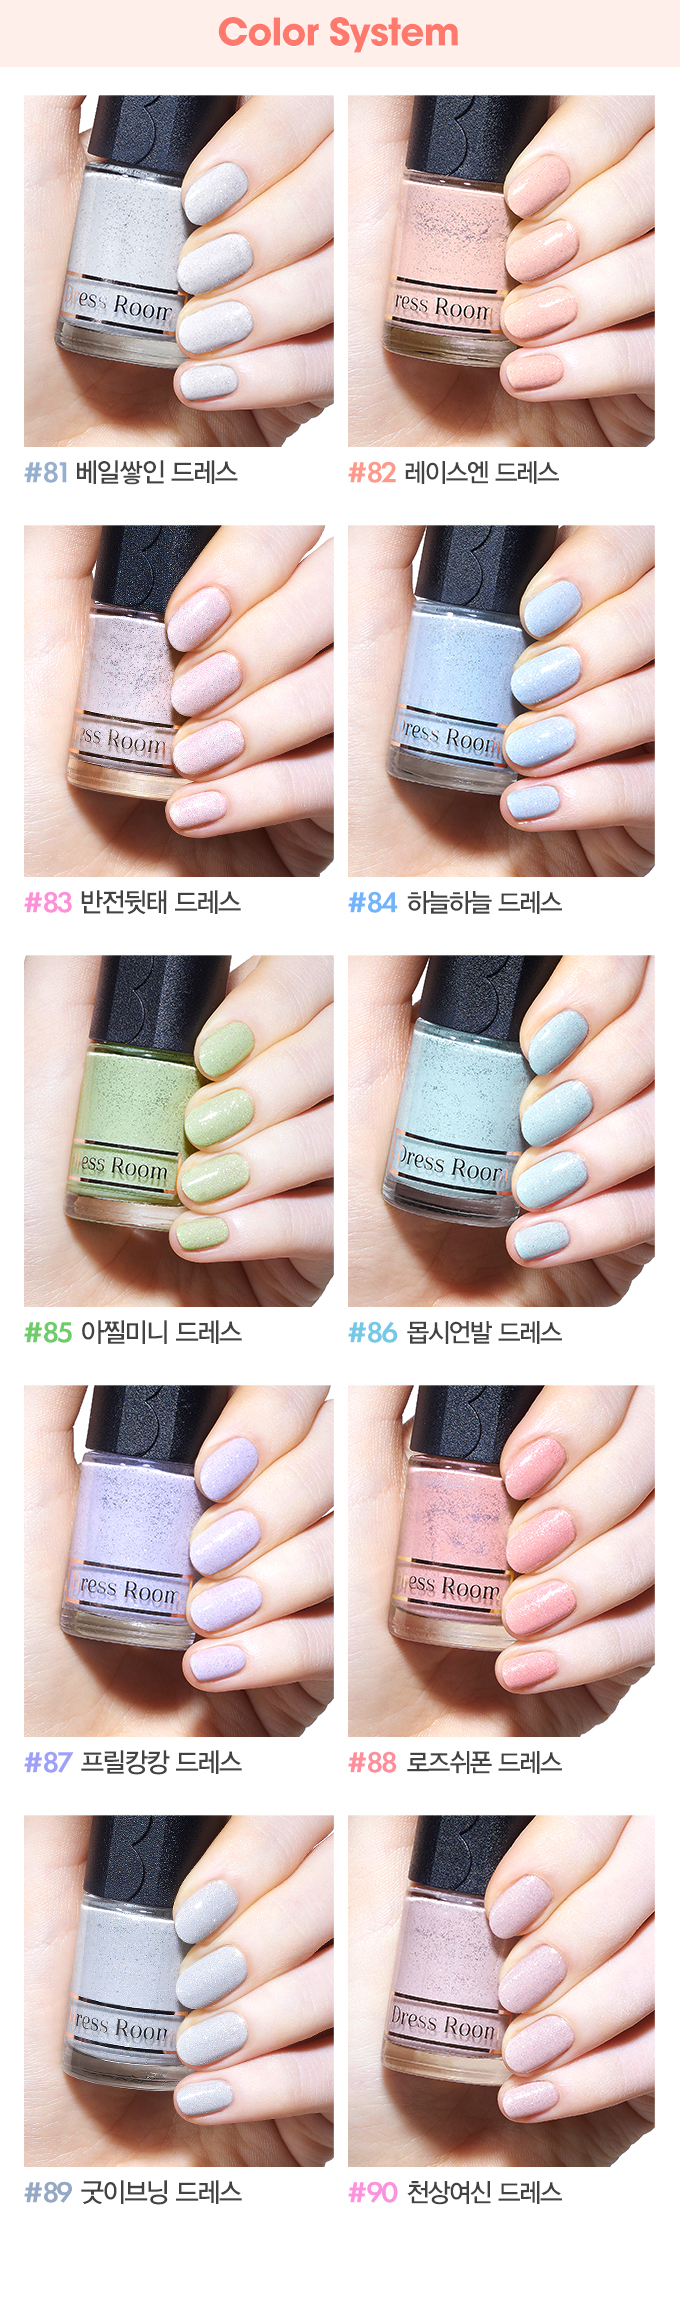 Etude House] Play Nail - Dress Room 8g (10Kinds)